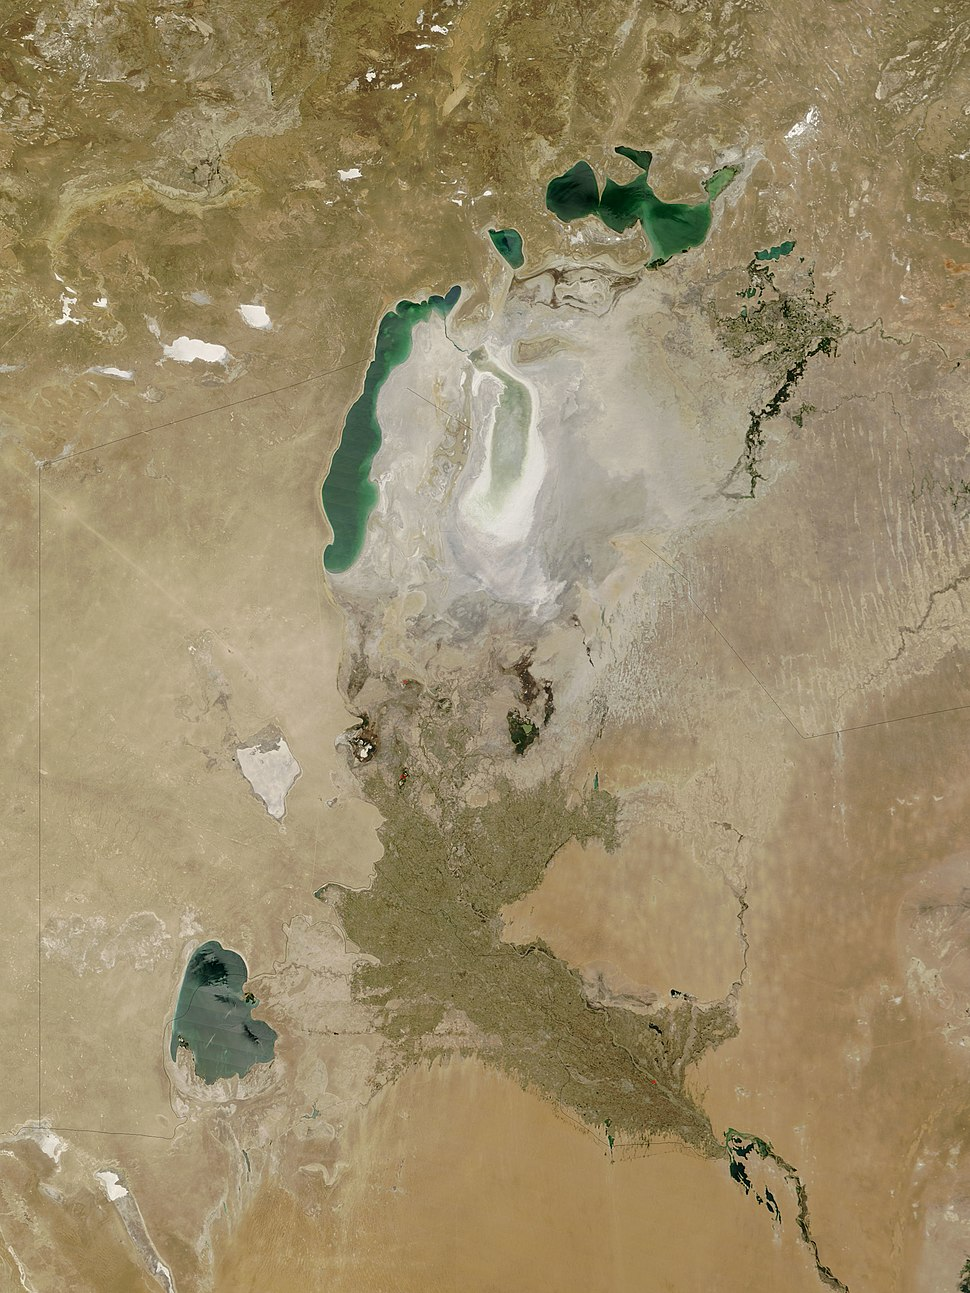 The Khwarazm oasis on a satellite image from 2009